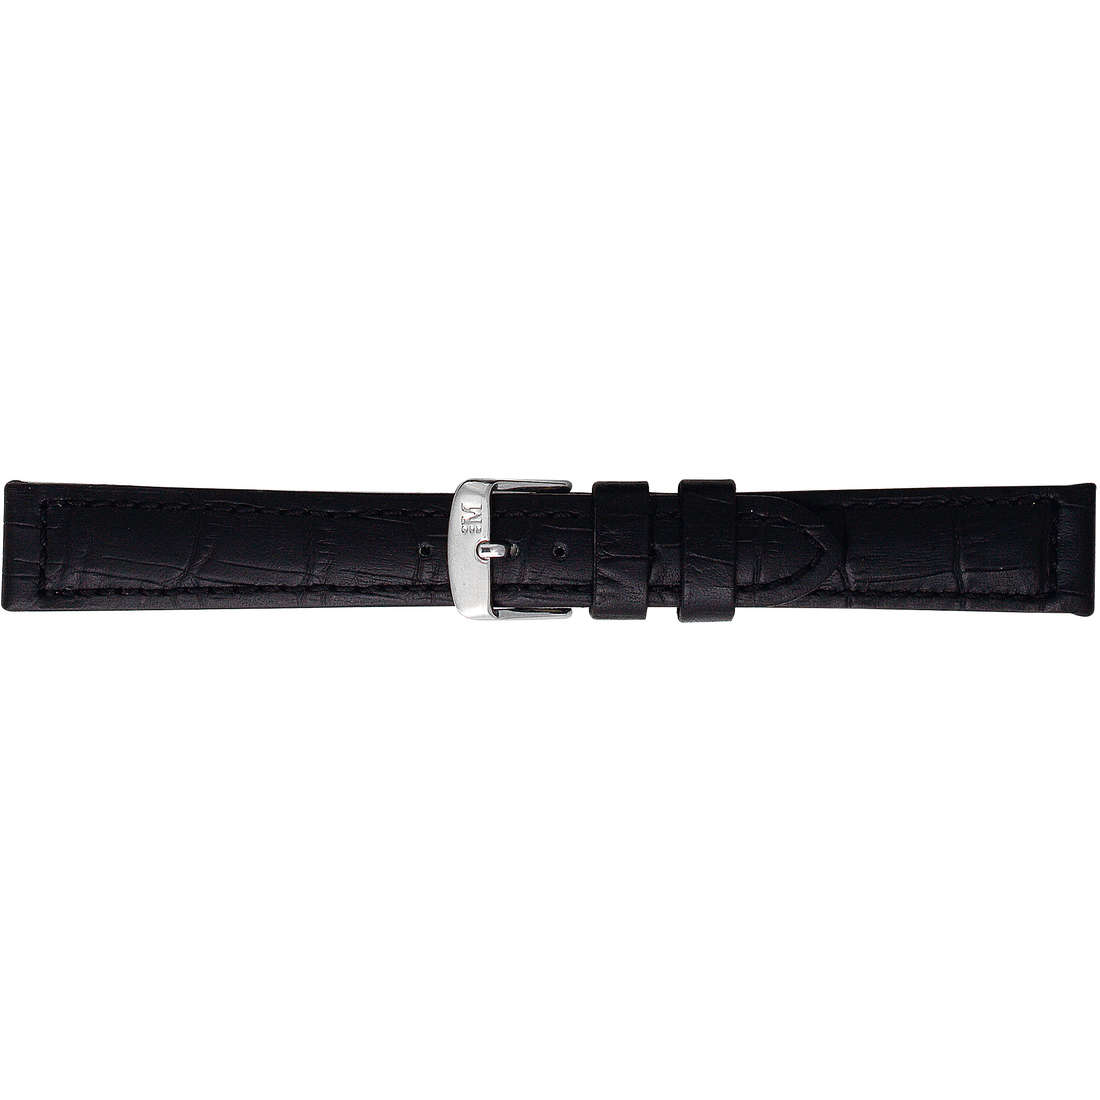 watch watch bands watch straps man Morellato Manufatti A01U2226480019CR24